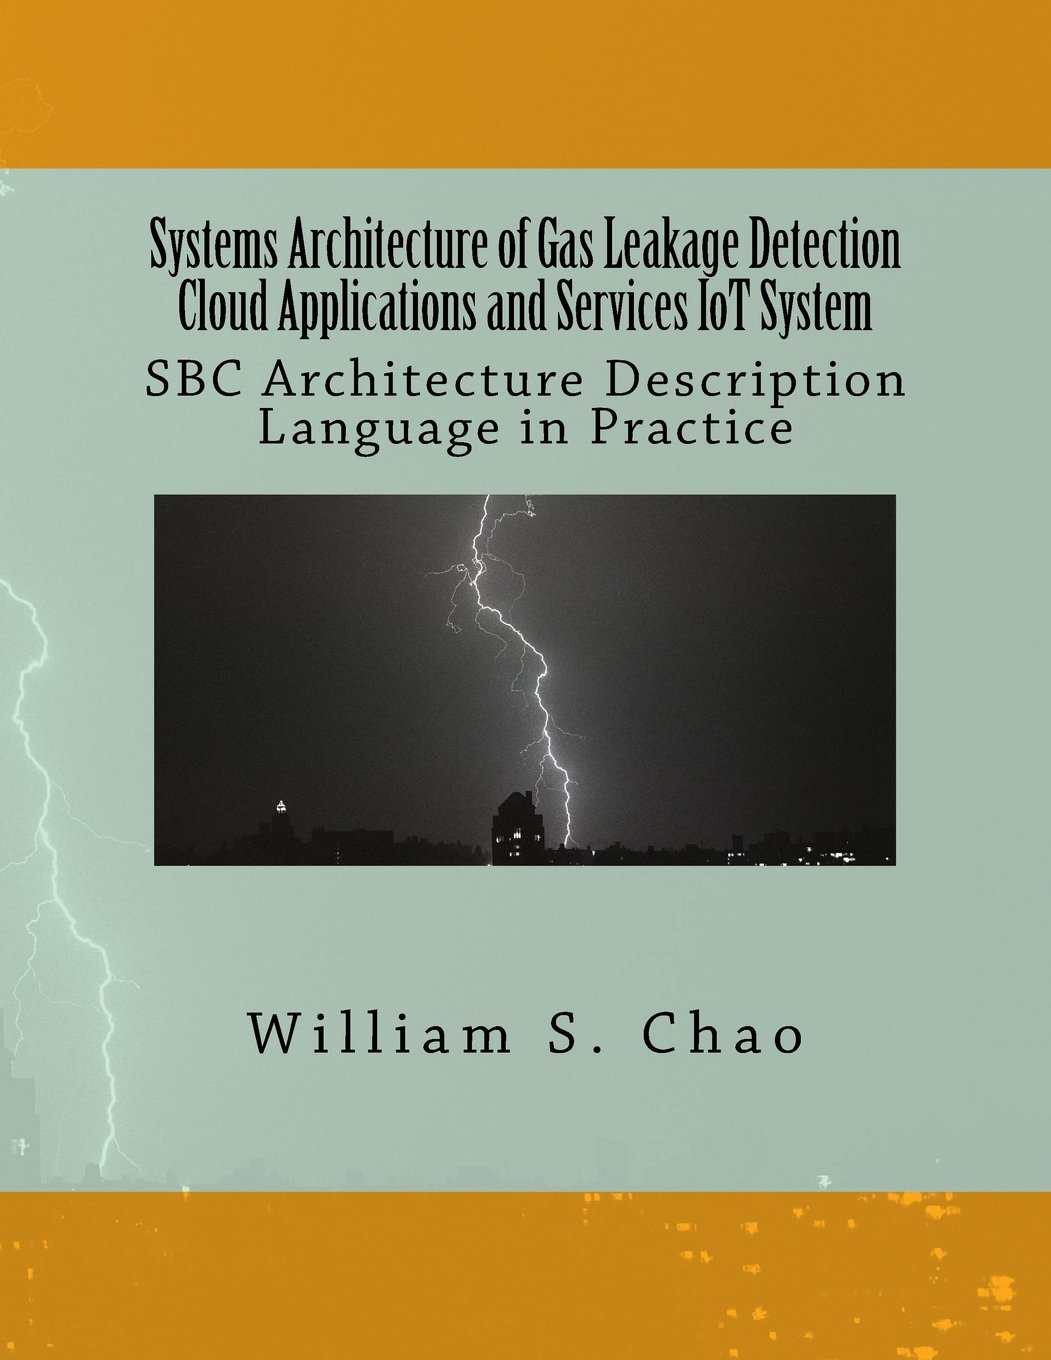 Download Systems Architecture of Gas Leakage Detection Cloud Applications and Services IoT System: SBC Architecture Description Language in Practice PDF